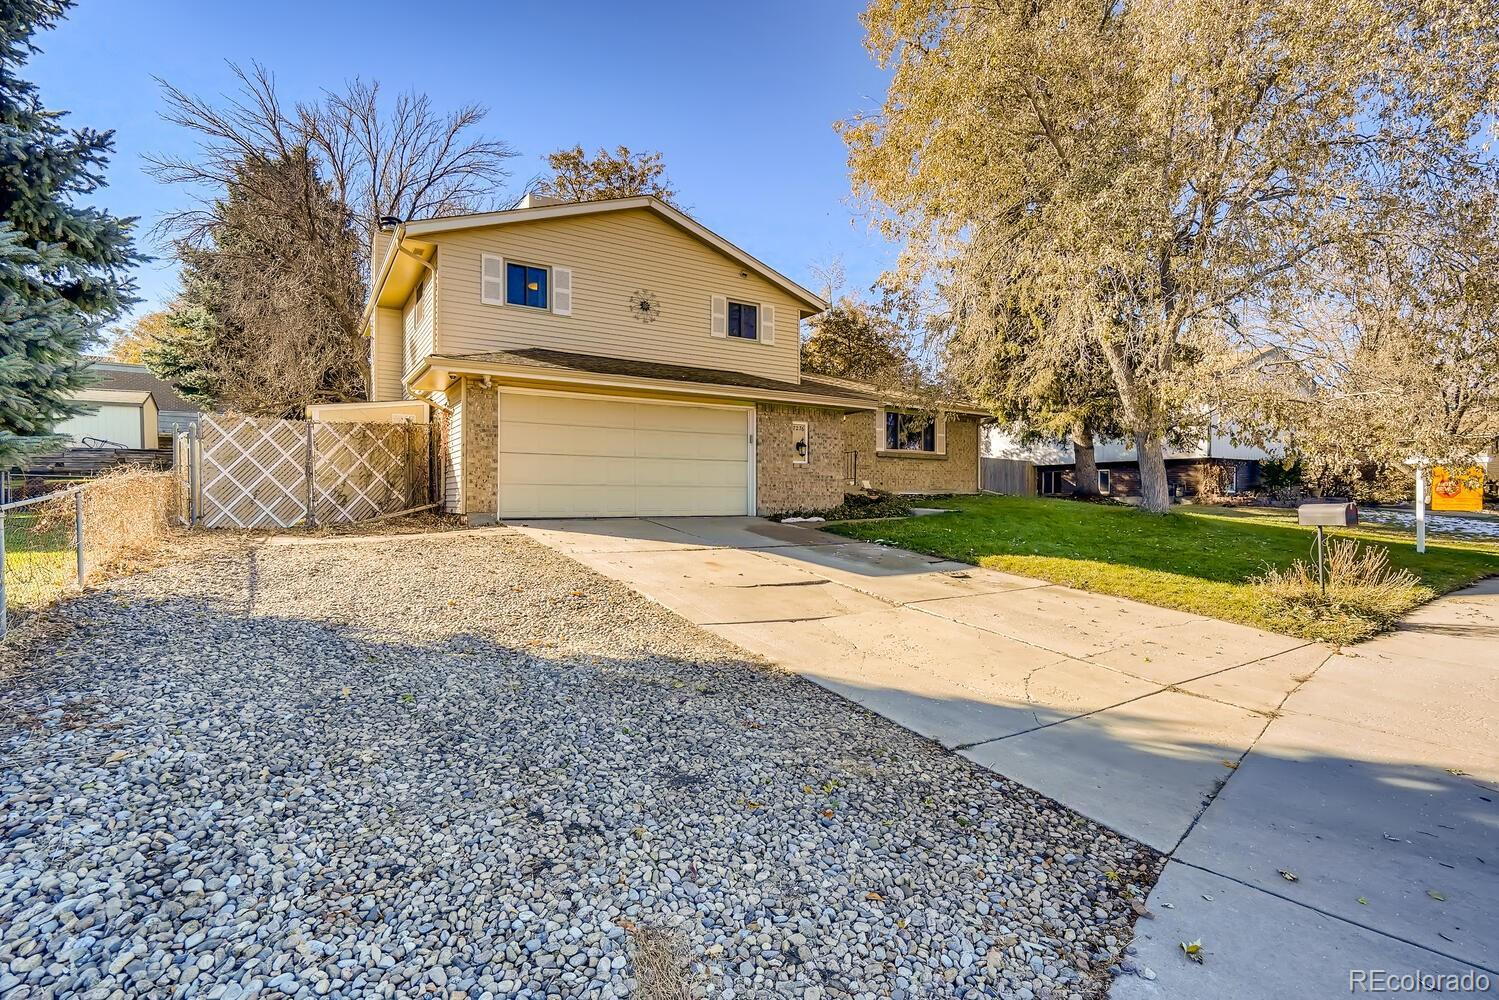 7276 W 72nd Place, Arvada, CO 80003 - #: 9479552